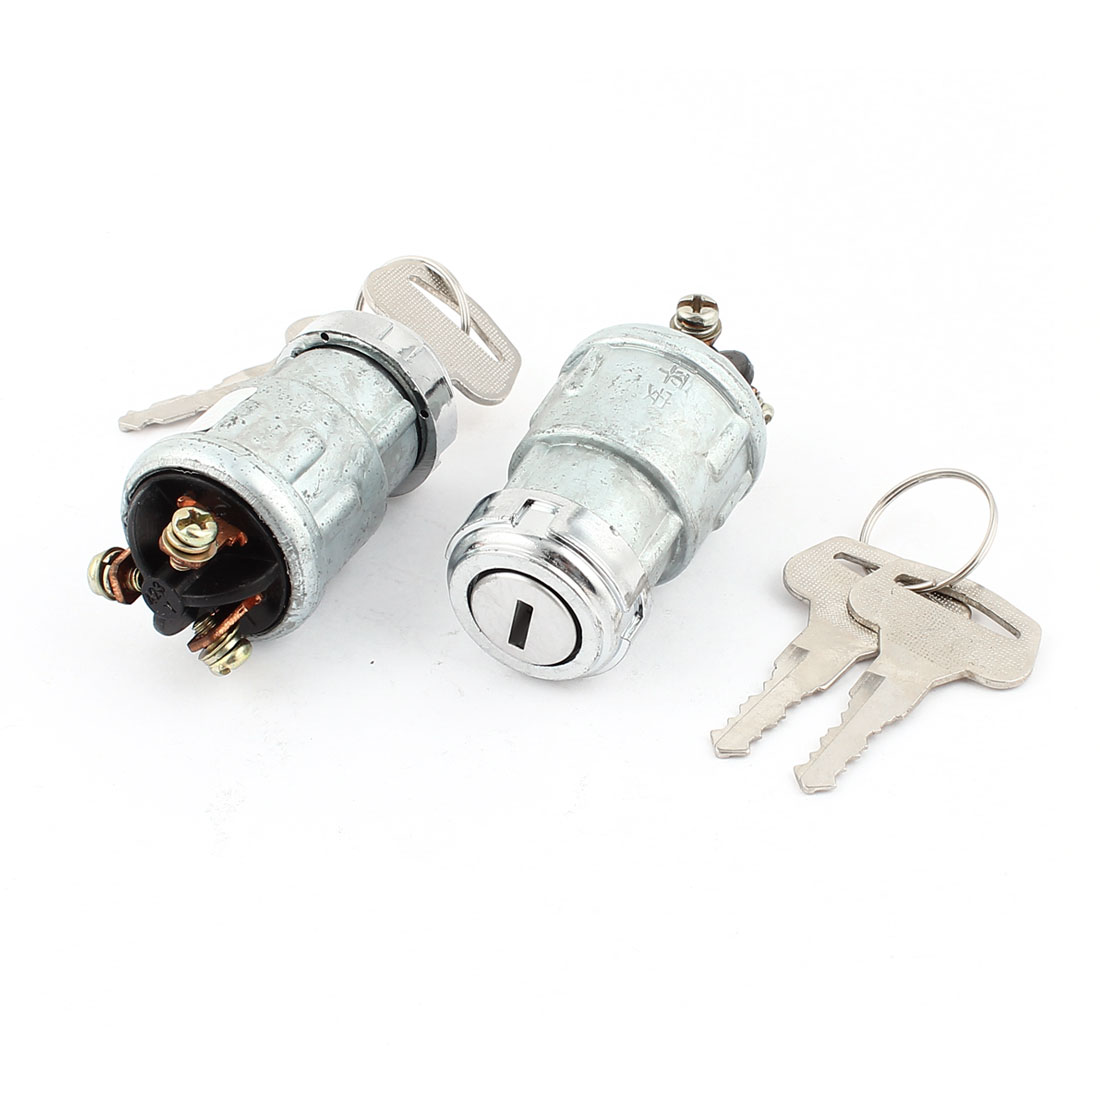 2 Pcs Silver Tone Metal SPST Lock Ignition Switch DC 12-60V 10A for Car Auto